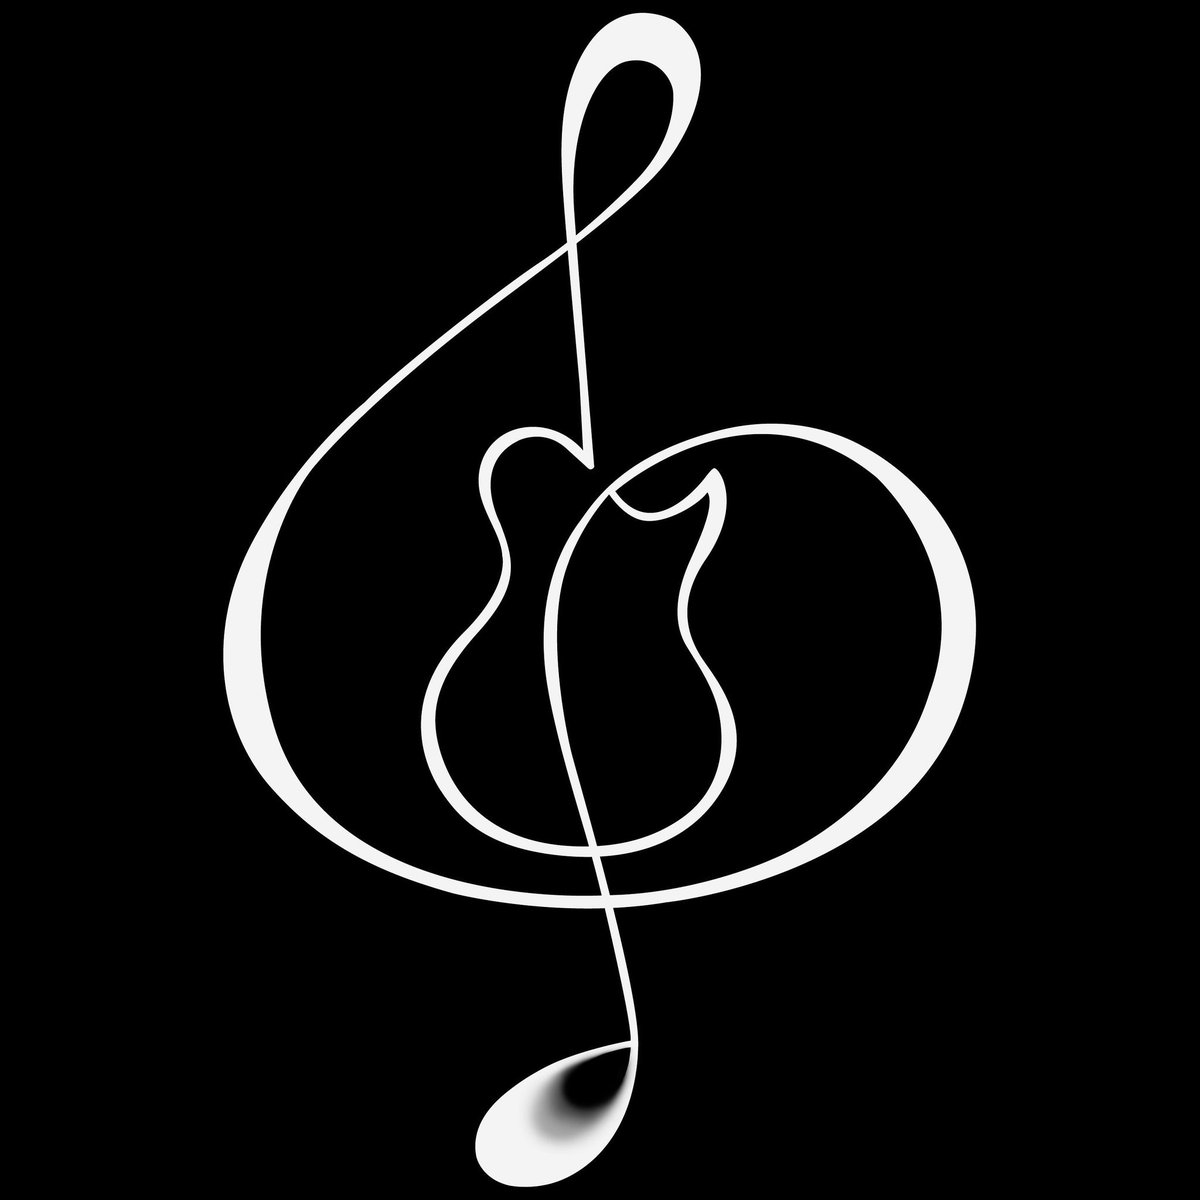 guitarclef™ drawn by Me, in honor of You. #tribute #Artists #musicians #songwriters #luthiers #techs #roadcrew #tourlife #guitars #basses <br>http://pic.twitter.com/vWTKerko5z